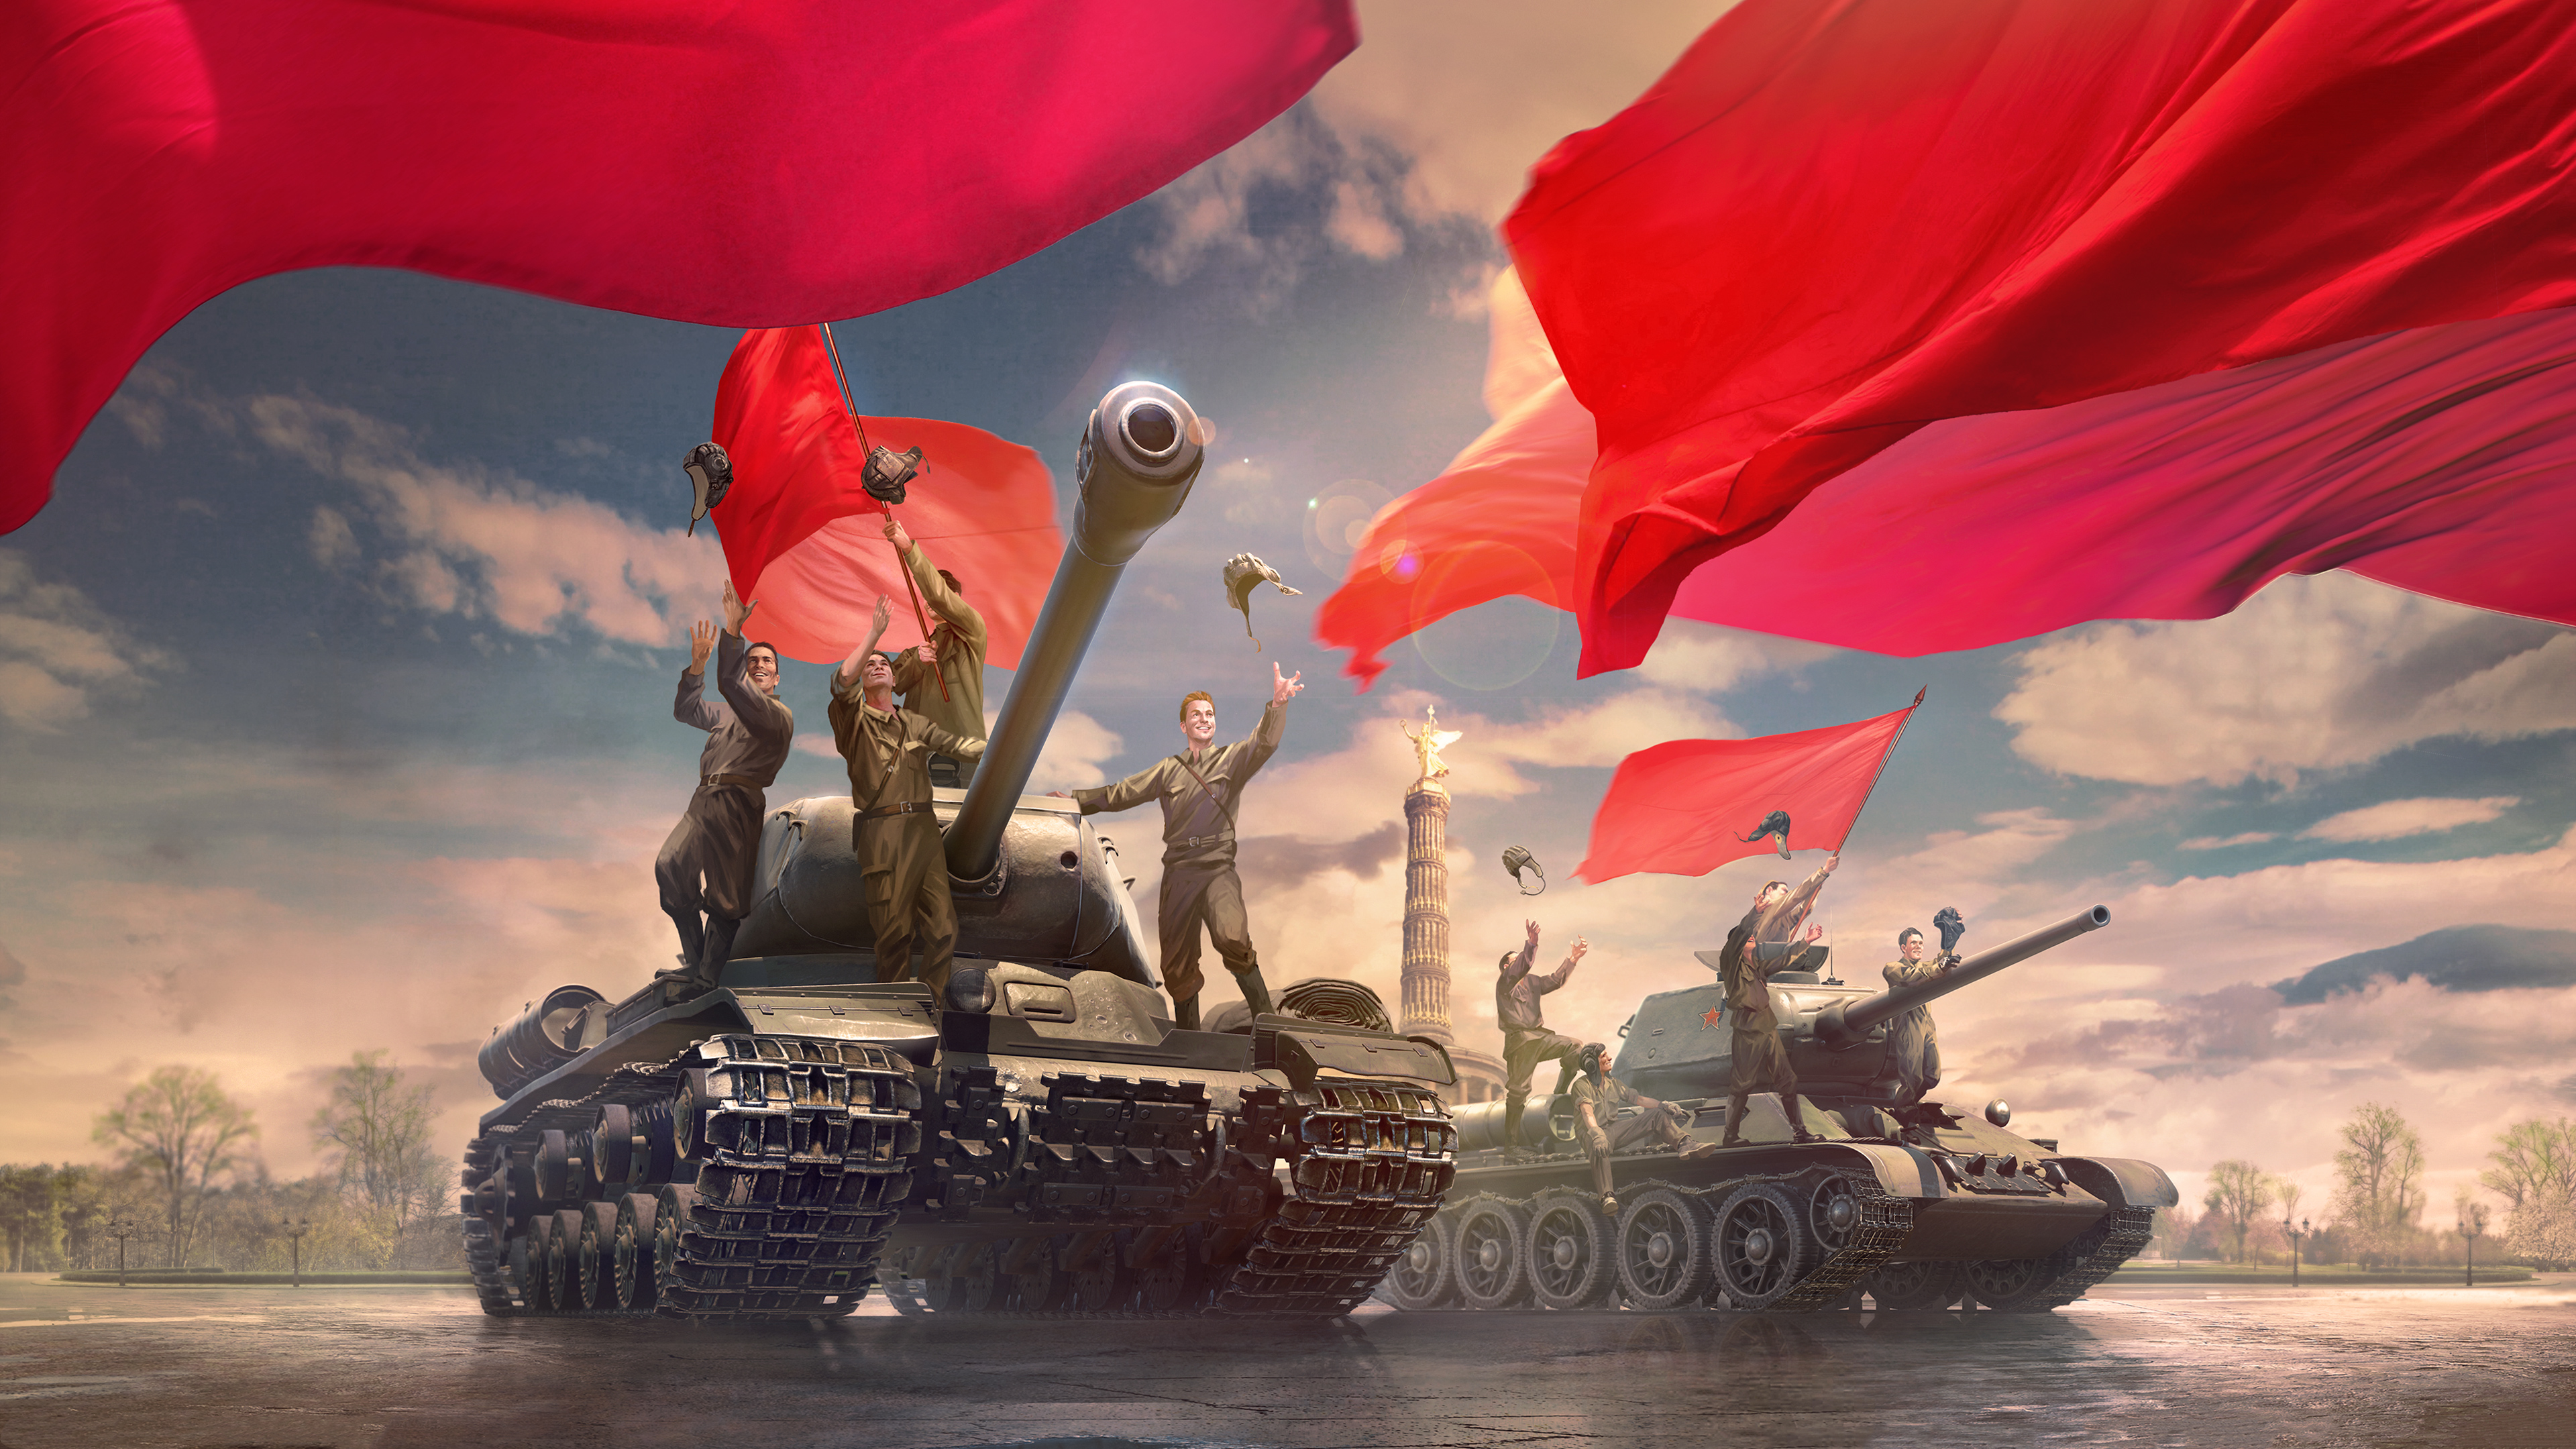 2018 world of tanks 4k 1538343988 - 2018 World Of Tanks 4k - xbox games wallpapers, world of tanks wallpapers, ps4 games wallpapers, pc games wallpapers, hd-wallpapers, games wallpapers, 4k-wallpapers